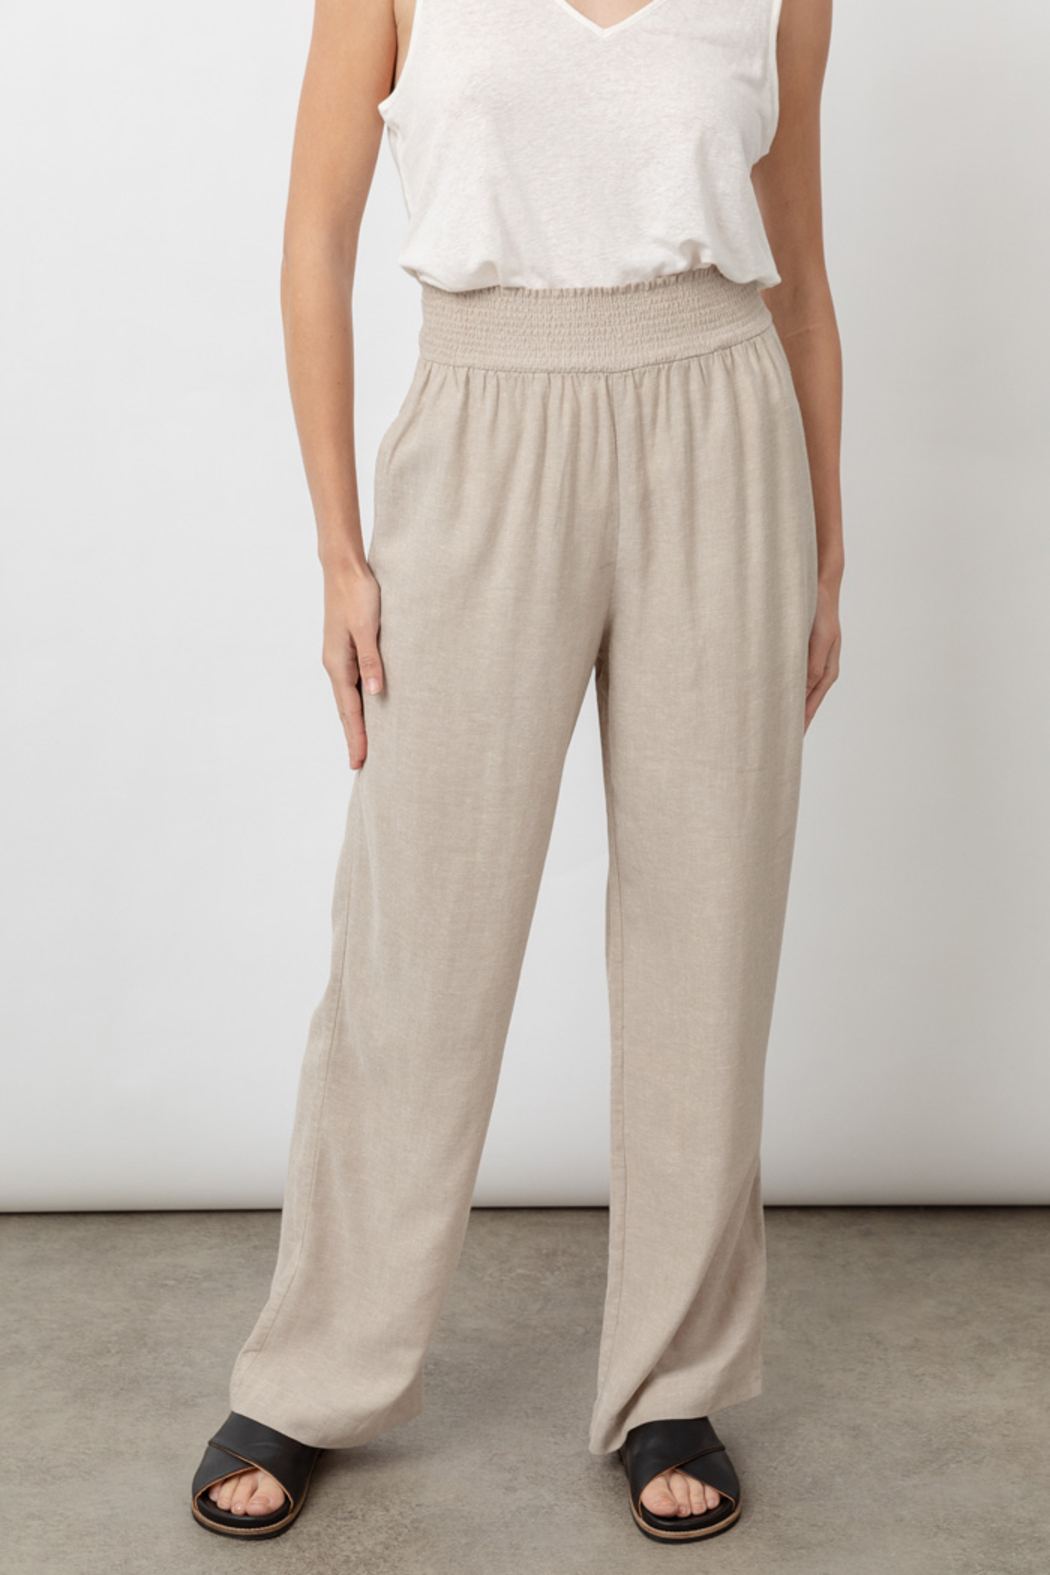 Rails Clothing RAILS LIGHTWEIGHT LINEN PANT - Side Cropped Image